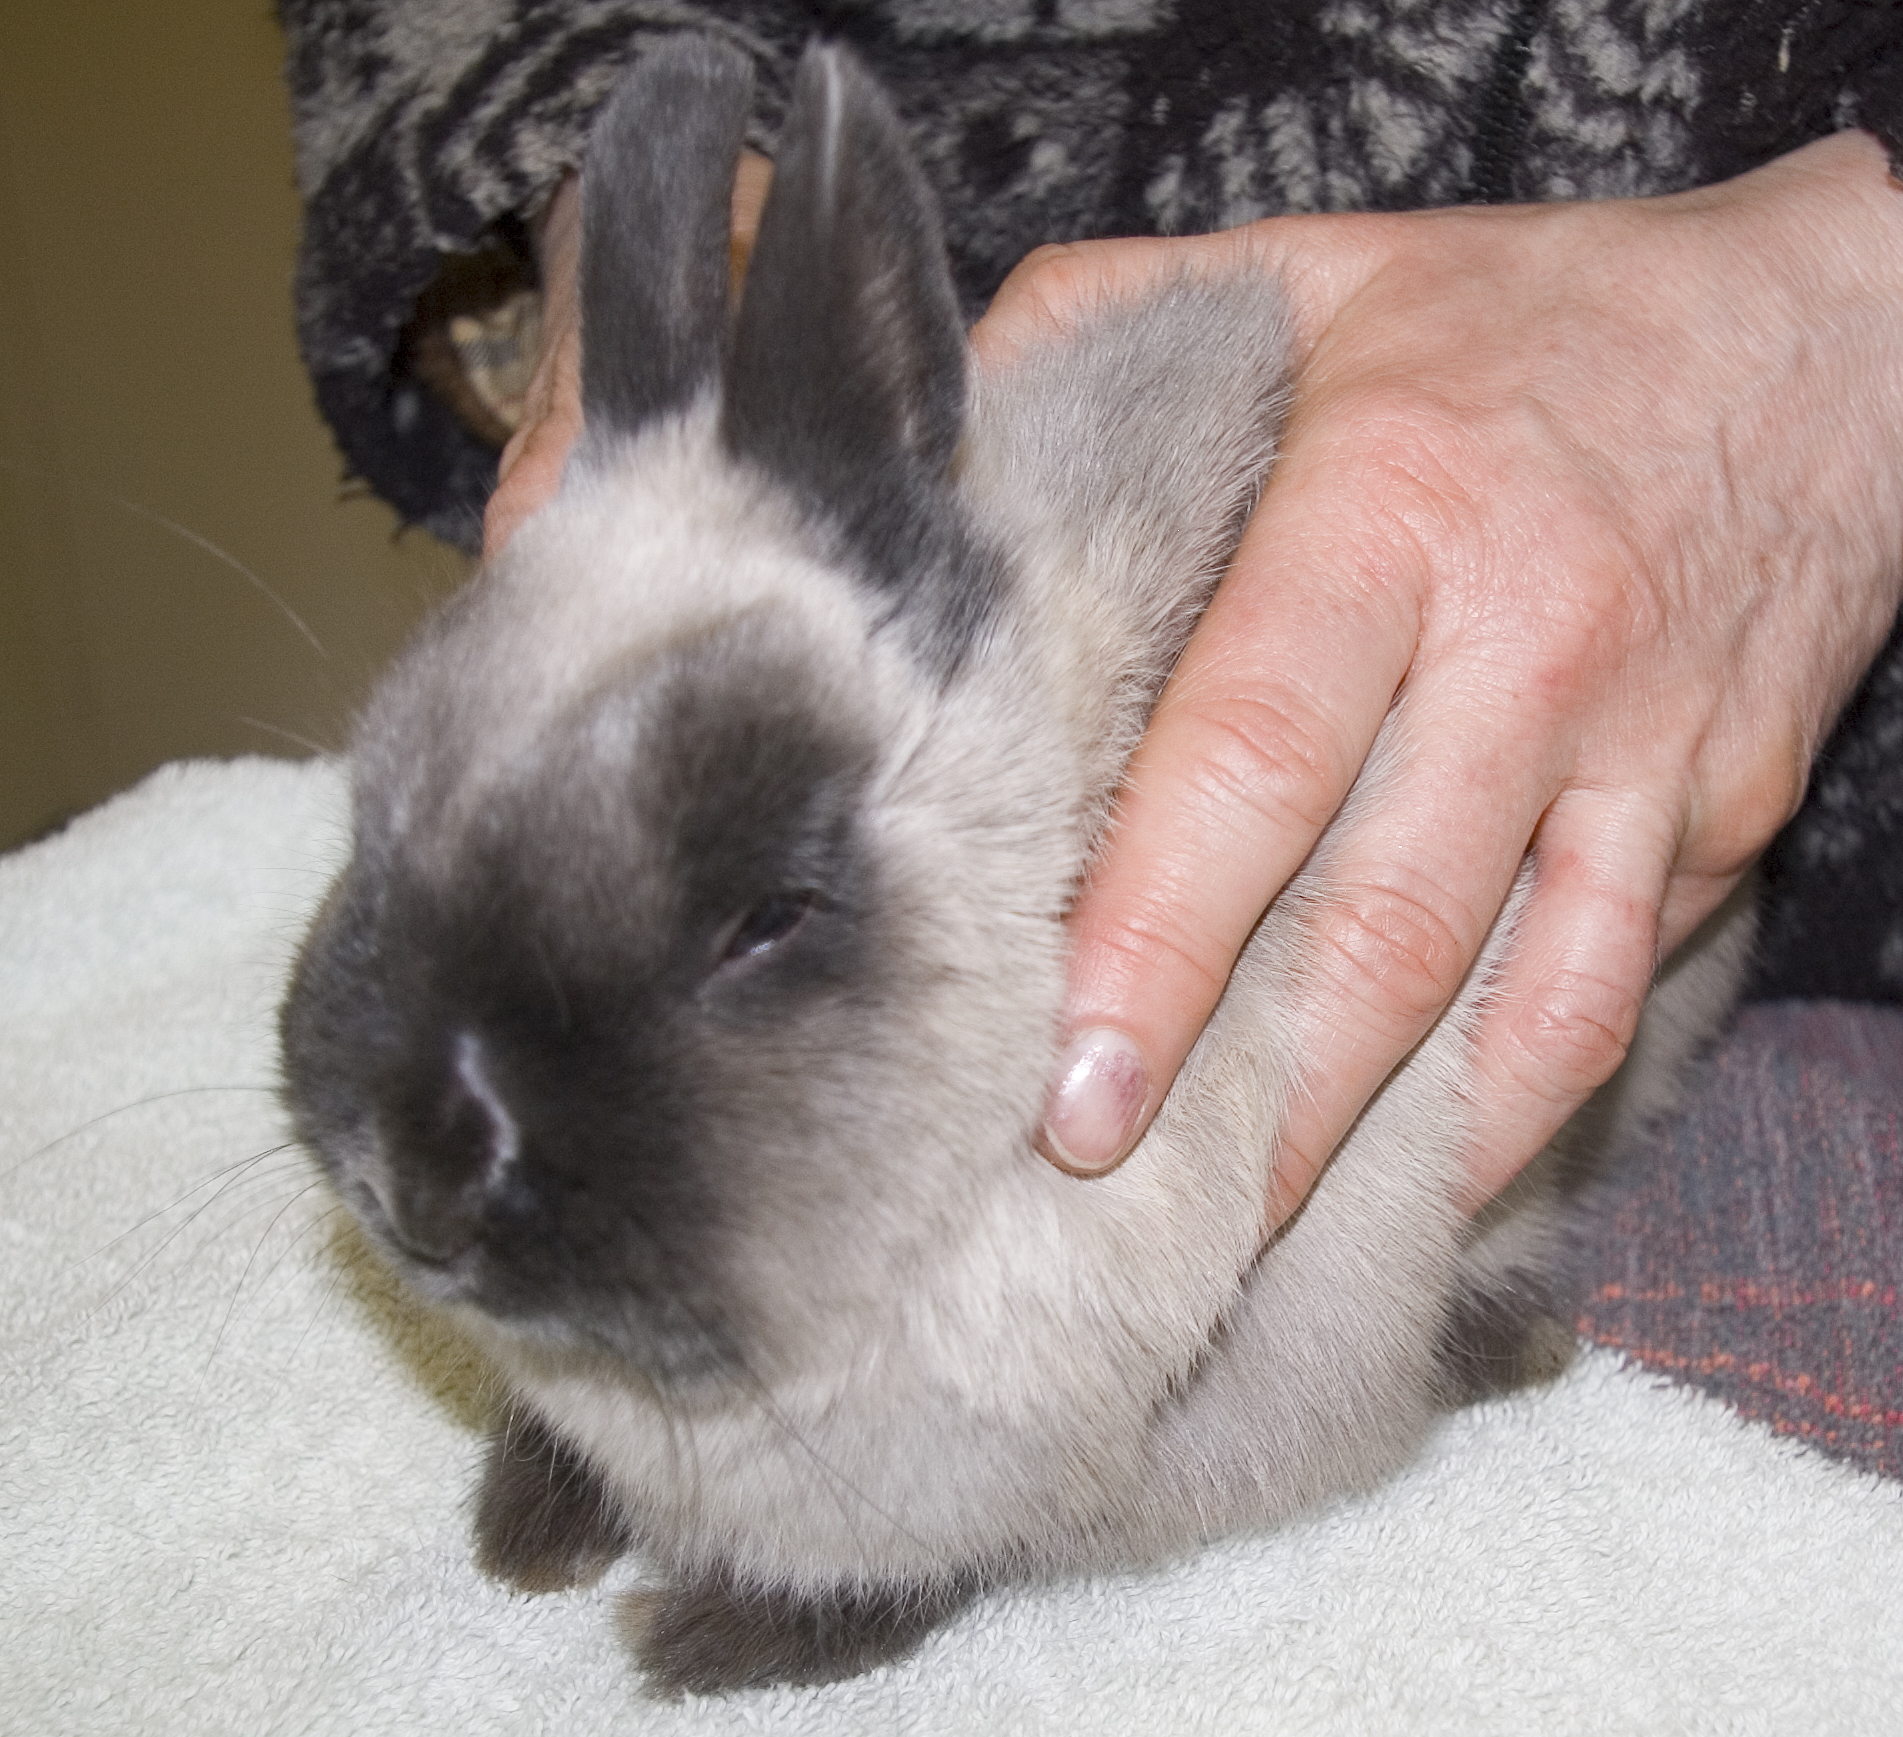 Owner holding rabbit with ringworm